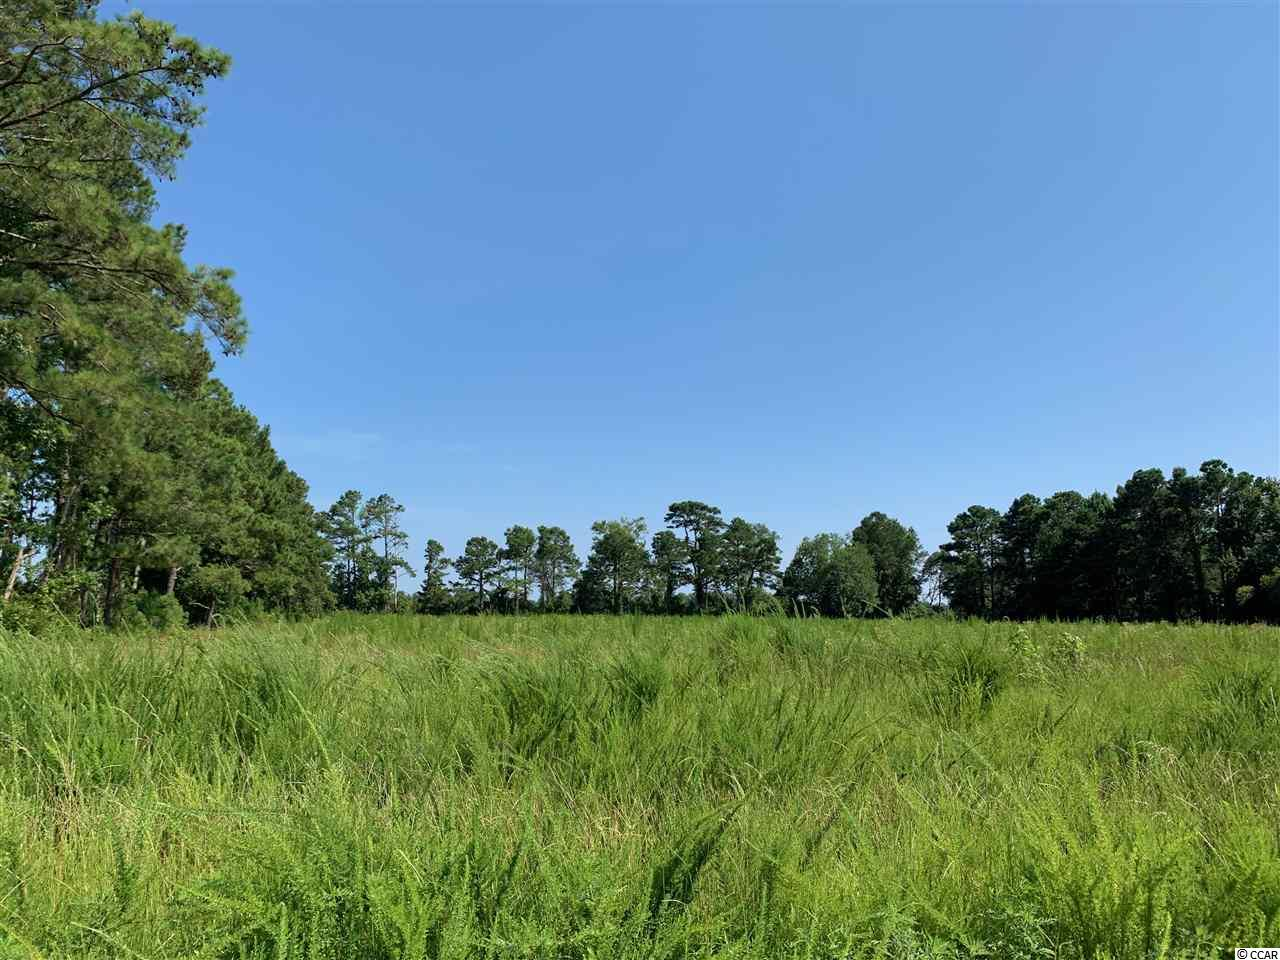 This unique property is located near Barefoot Landing and Hwy 31 for easy access all along the Grand Strand. Long Bay Ridge is a small, gated subdivision of just 10 extra large residential building lots, all located directly on the Intracoastal Waterway! This lot is over 102,000 SQ FT (2.36 acres) with 182' of direct waterway frontage!